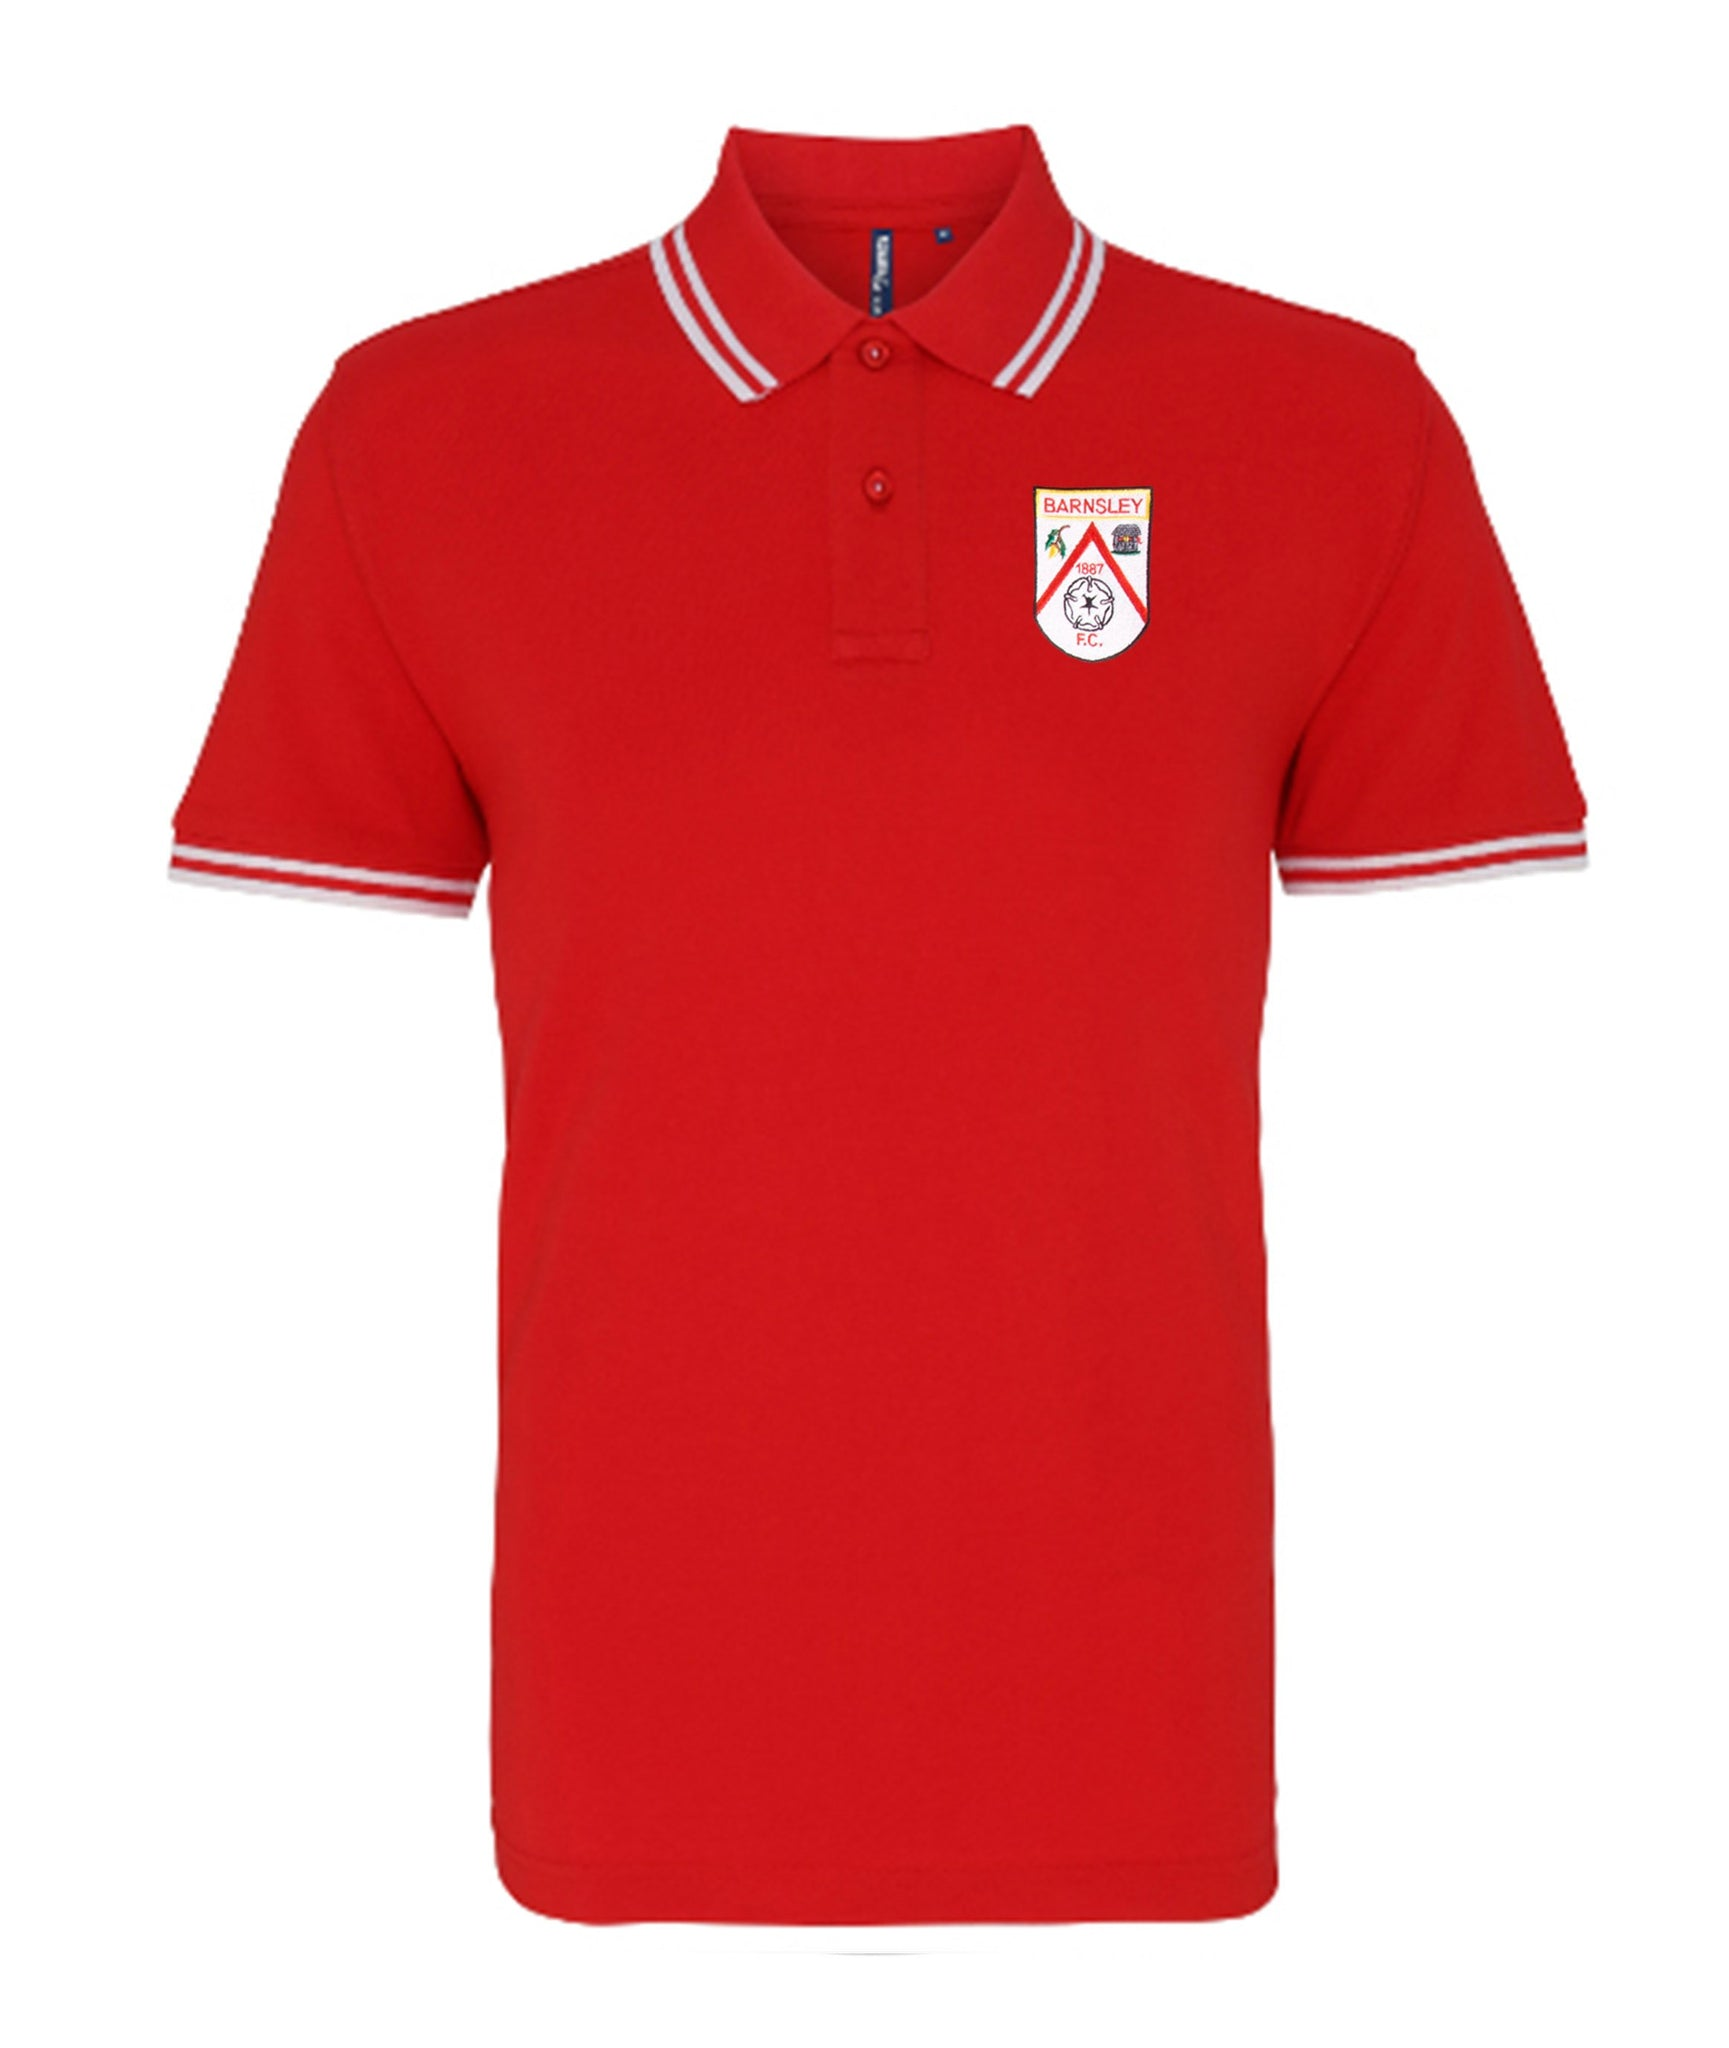 Barnsley Retro Football Iconic Polo Shirt - Polo